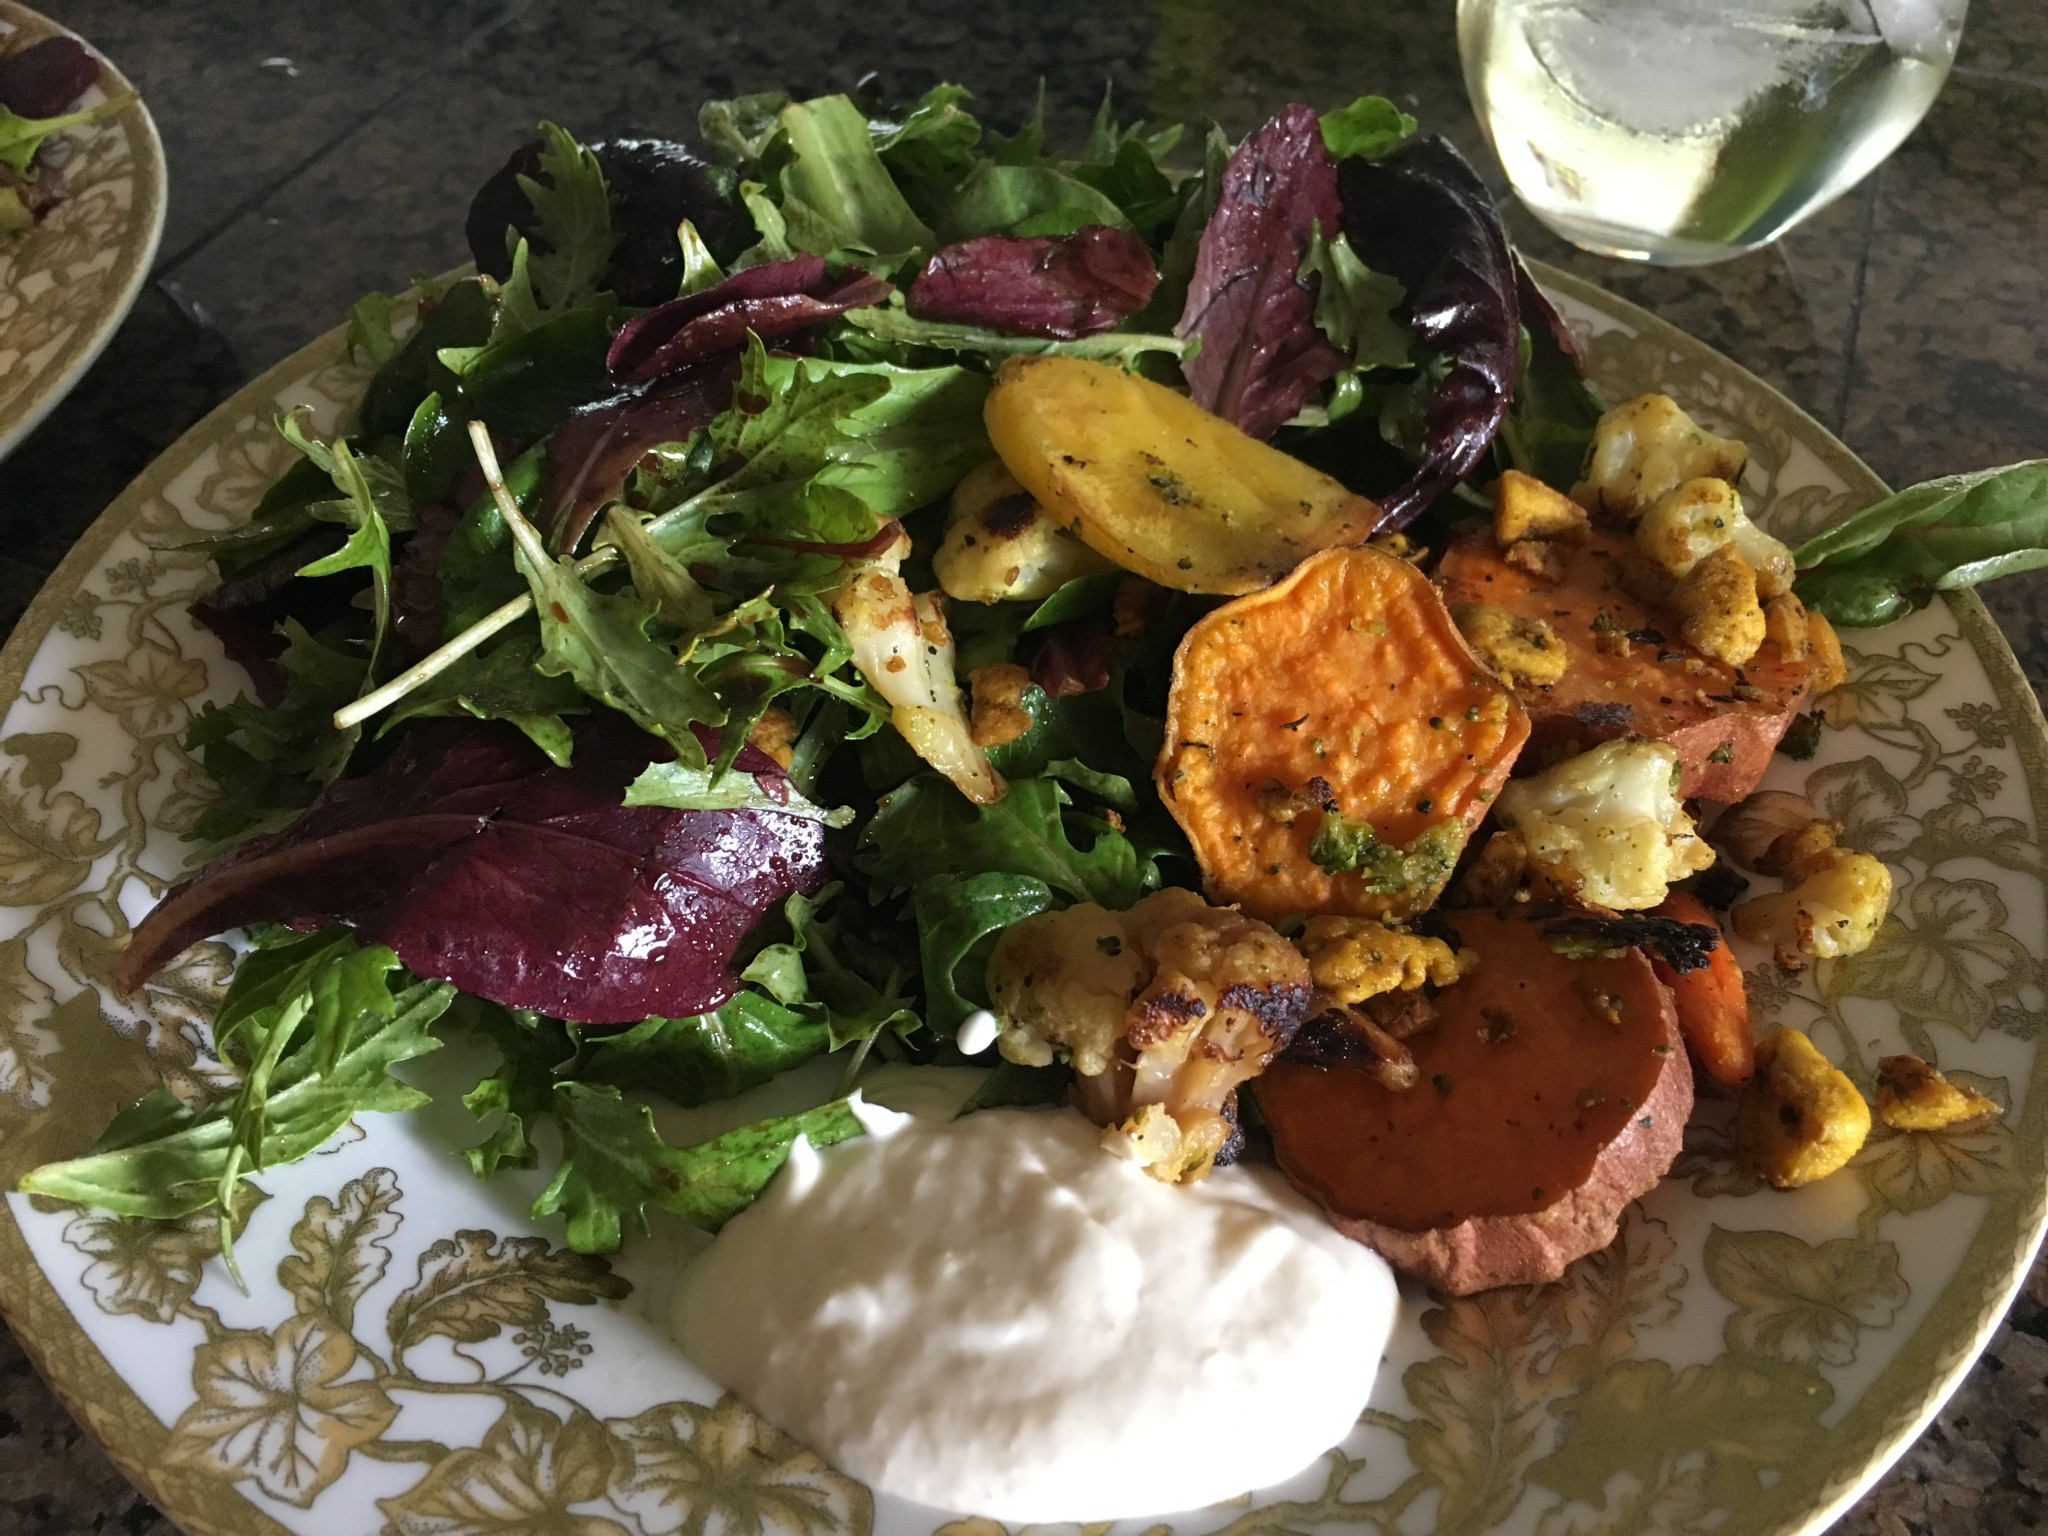 Winter salad with roasted veggies and horseradish sauce.